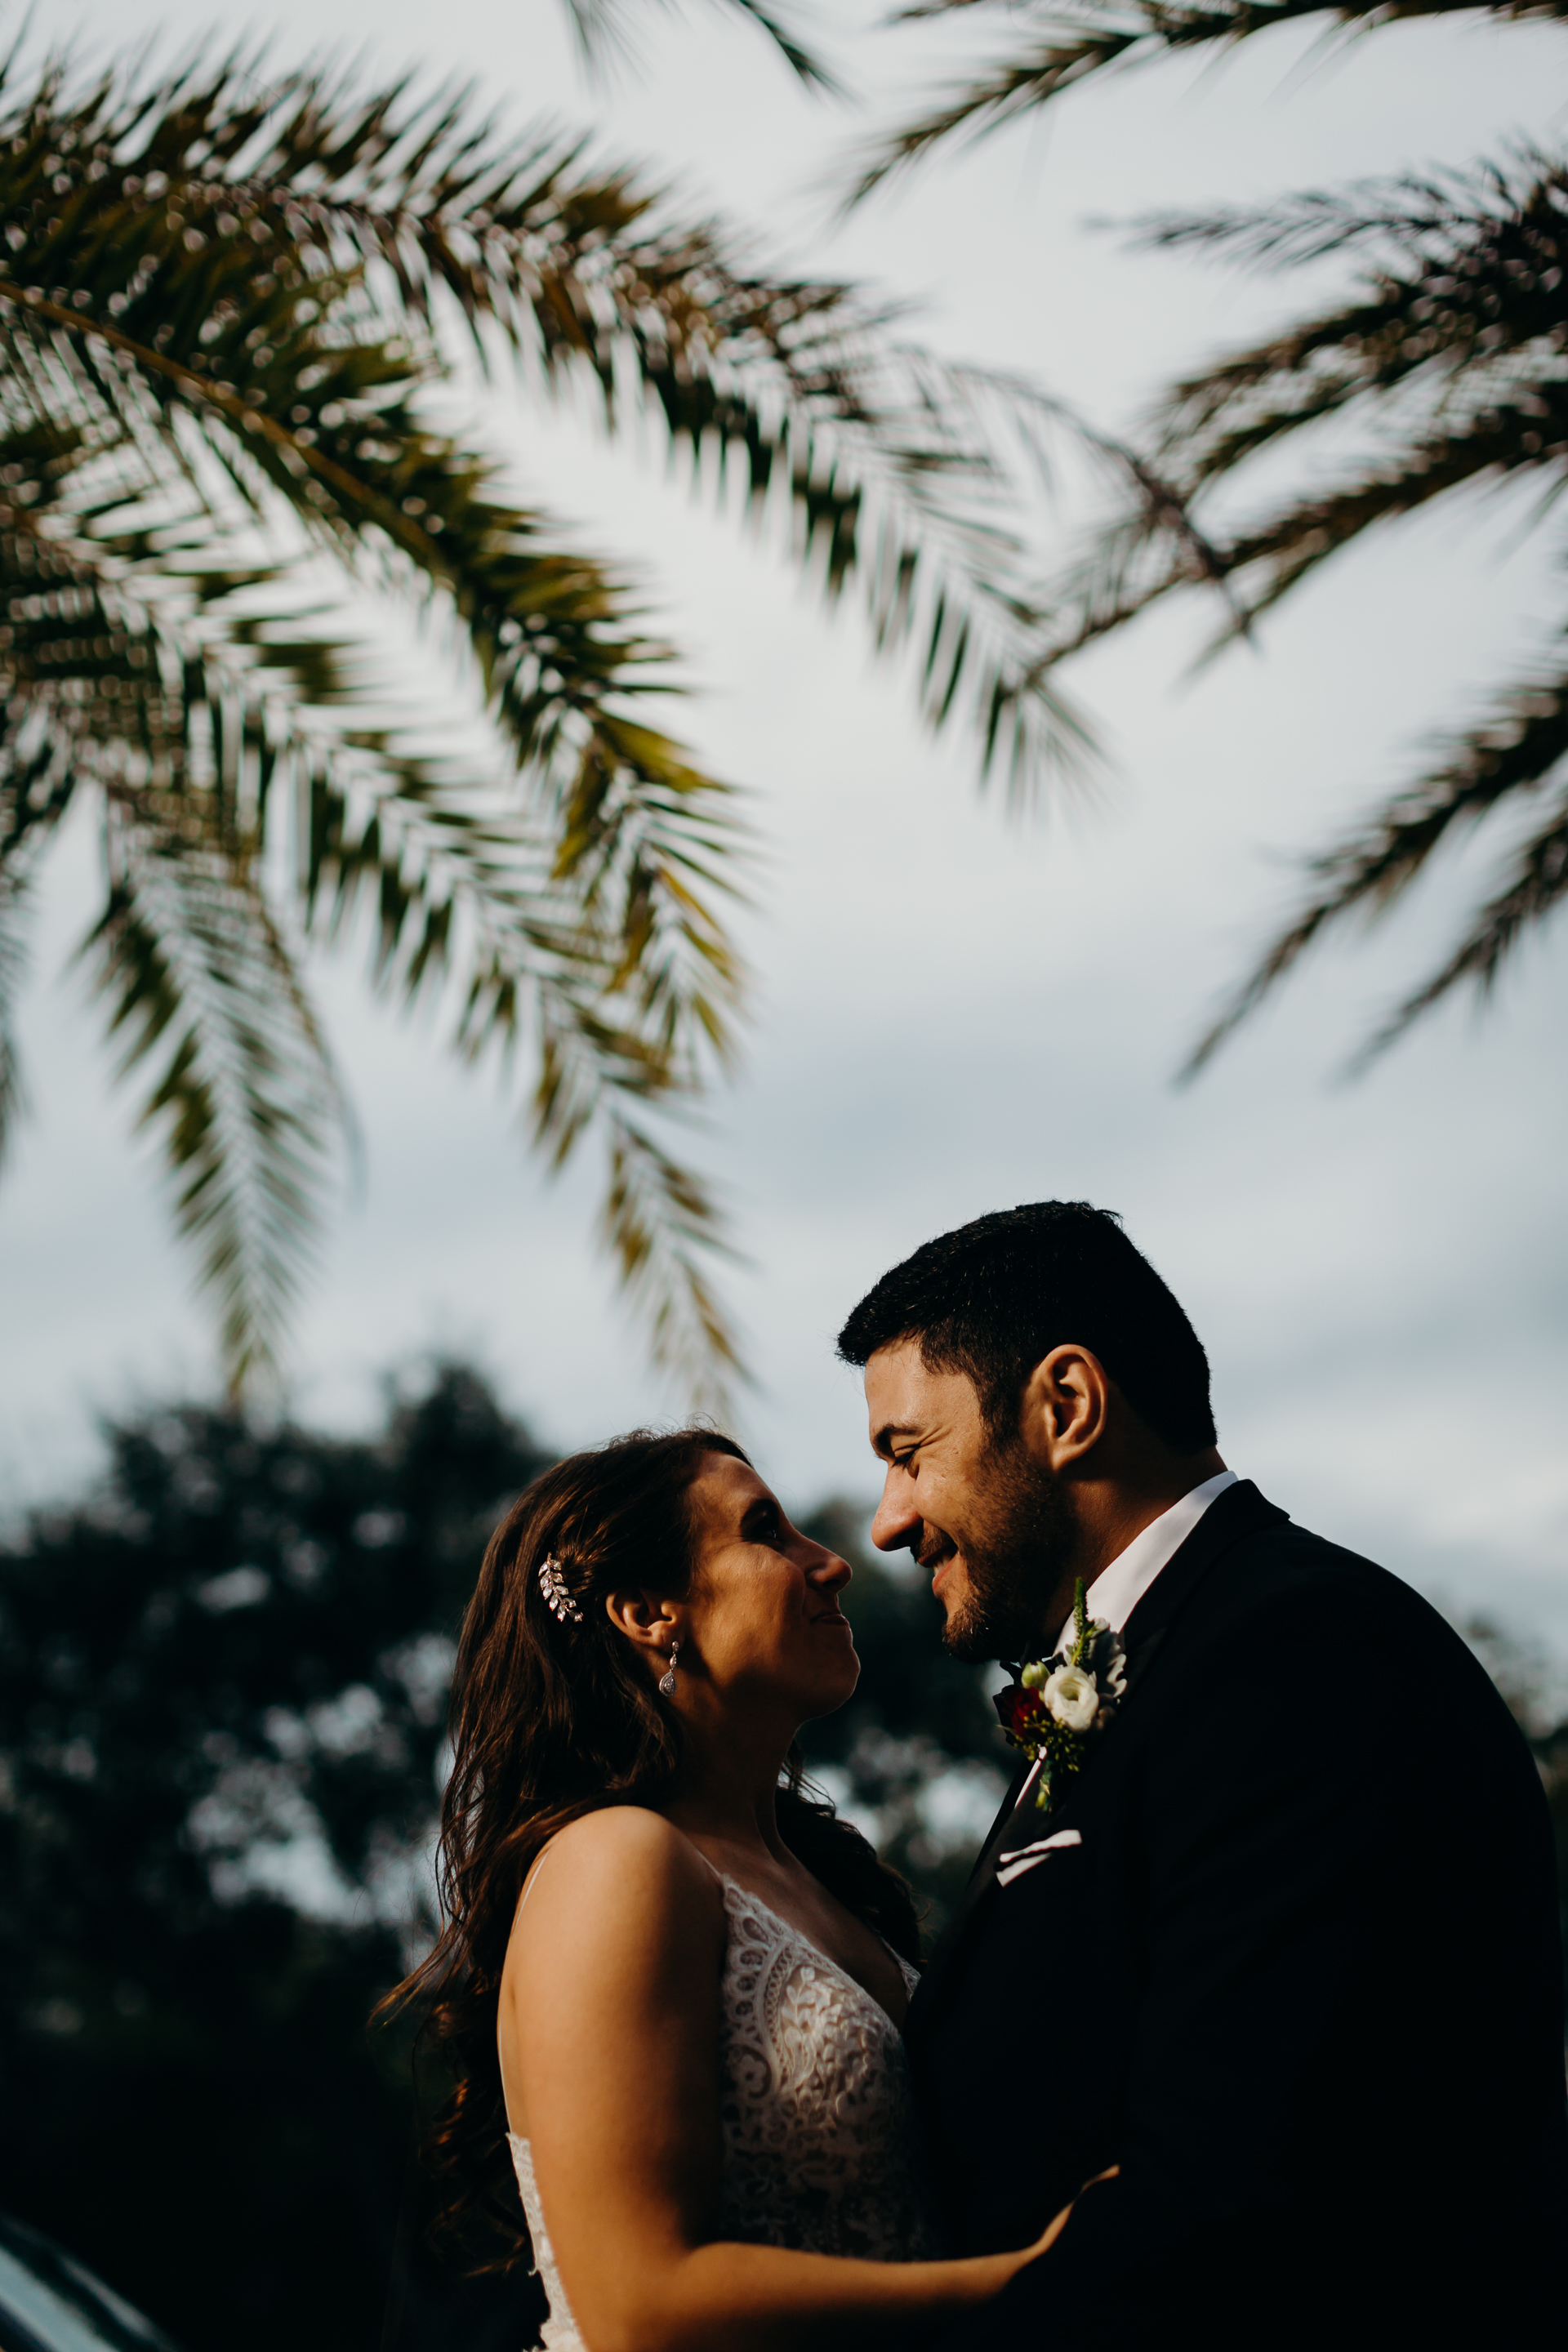 Gianna Keiko Atlanta San Francisco NYC Wedding Engagement Wedding Elopement Photographer_Sneak Peek-50.jpg